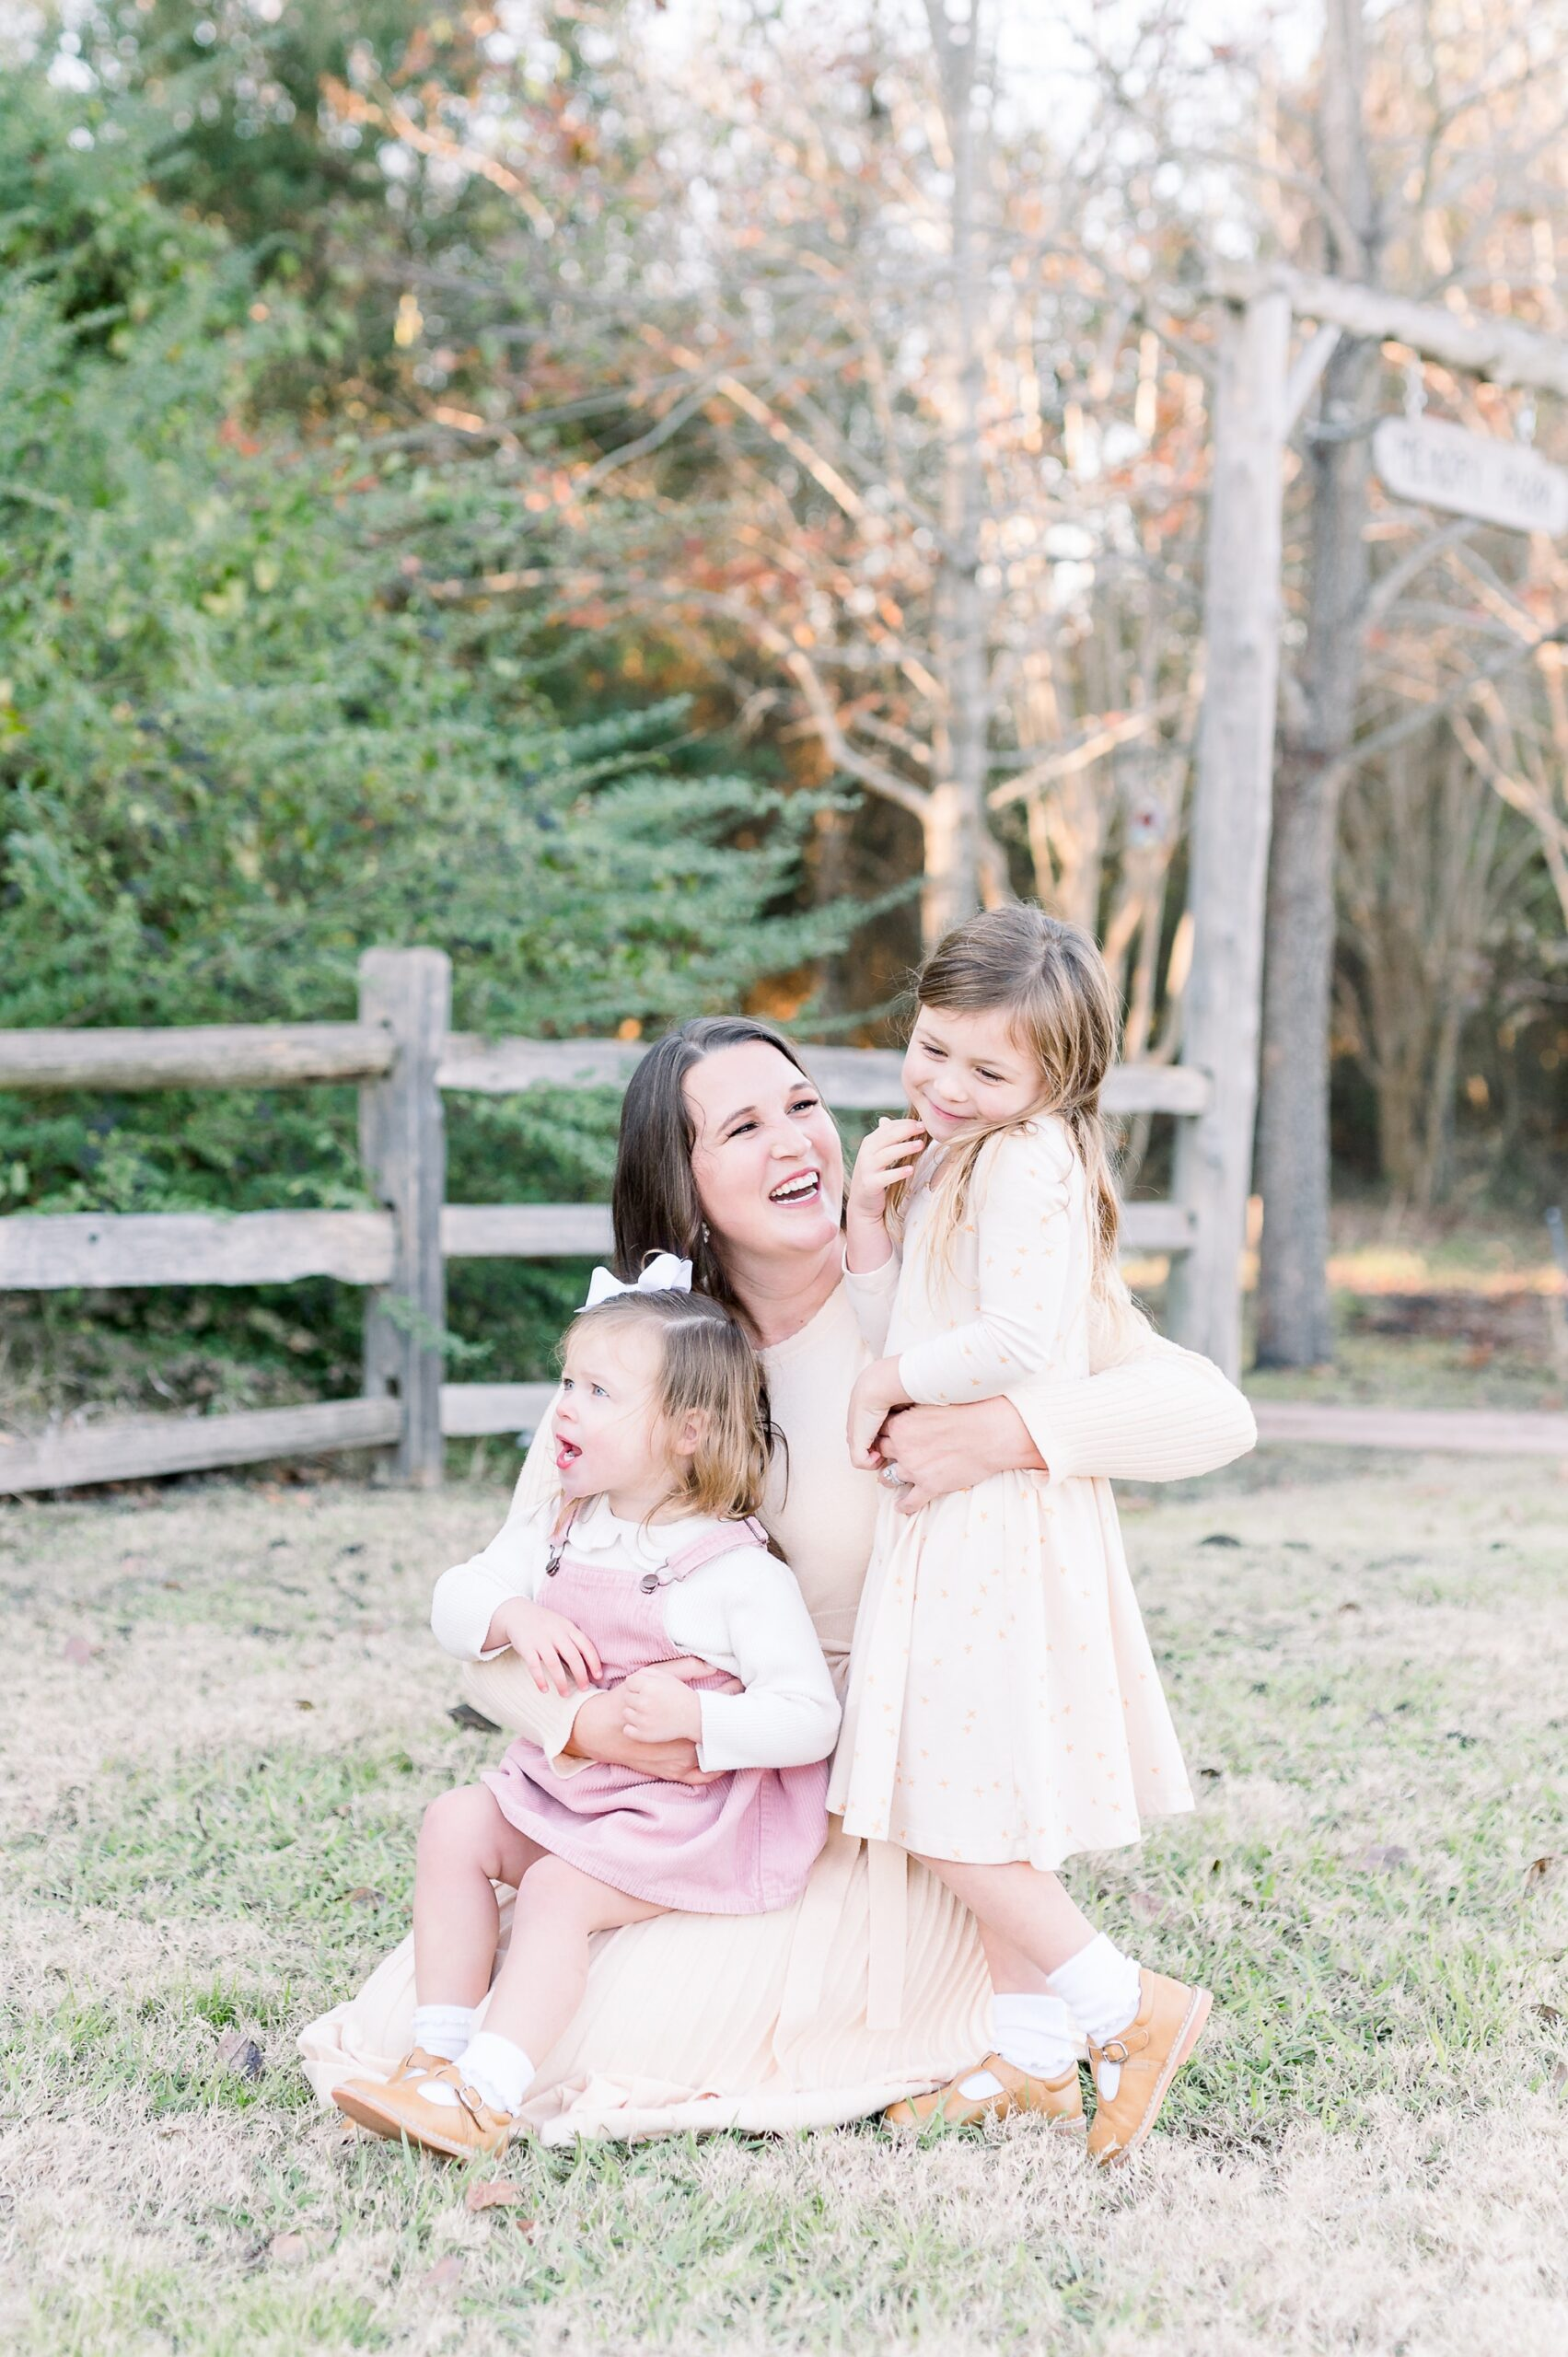 Sweet photo of Mom sitting with two daughters in McKinney family photography session. Photo by Aimee Hamilton Photography.